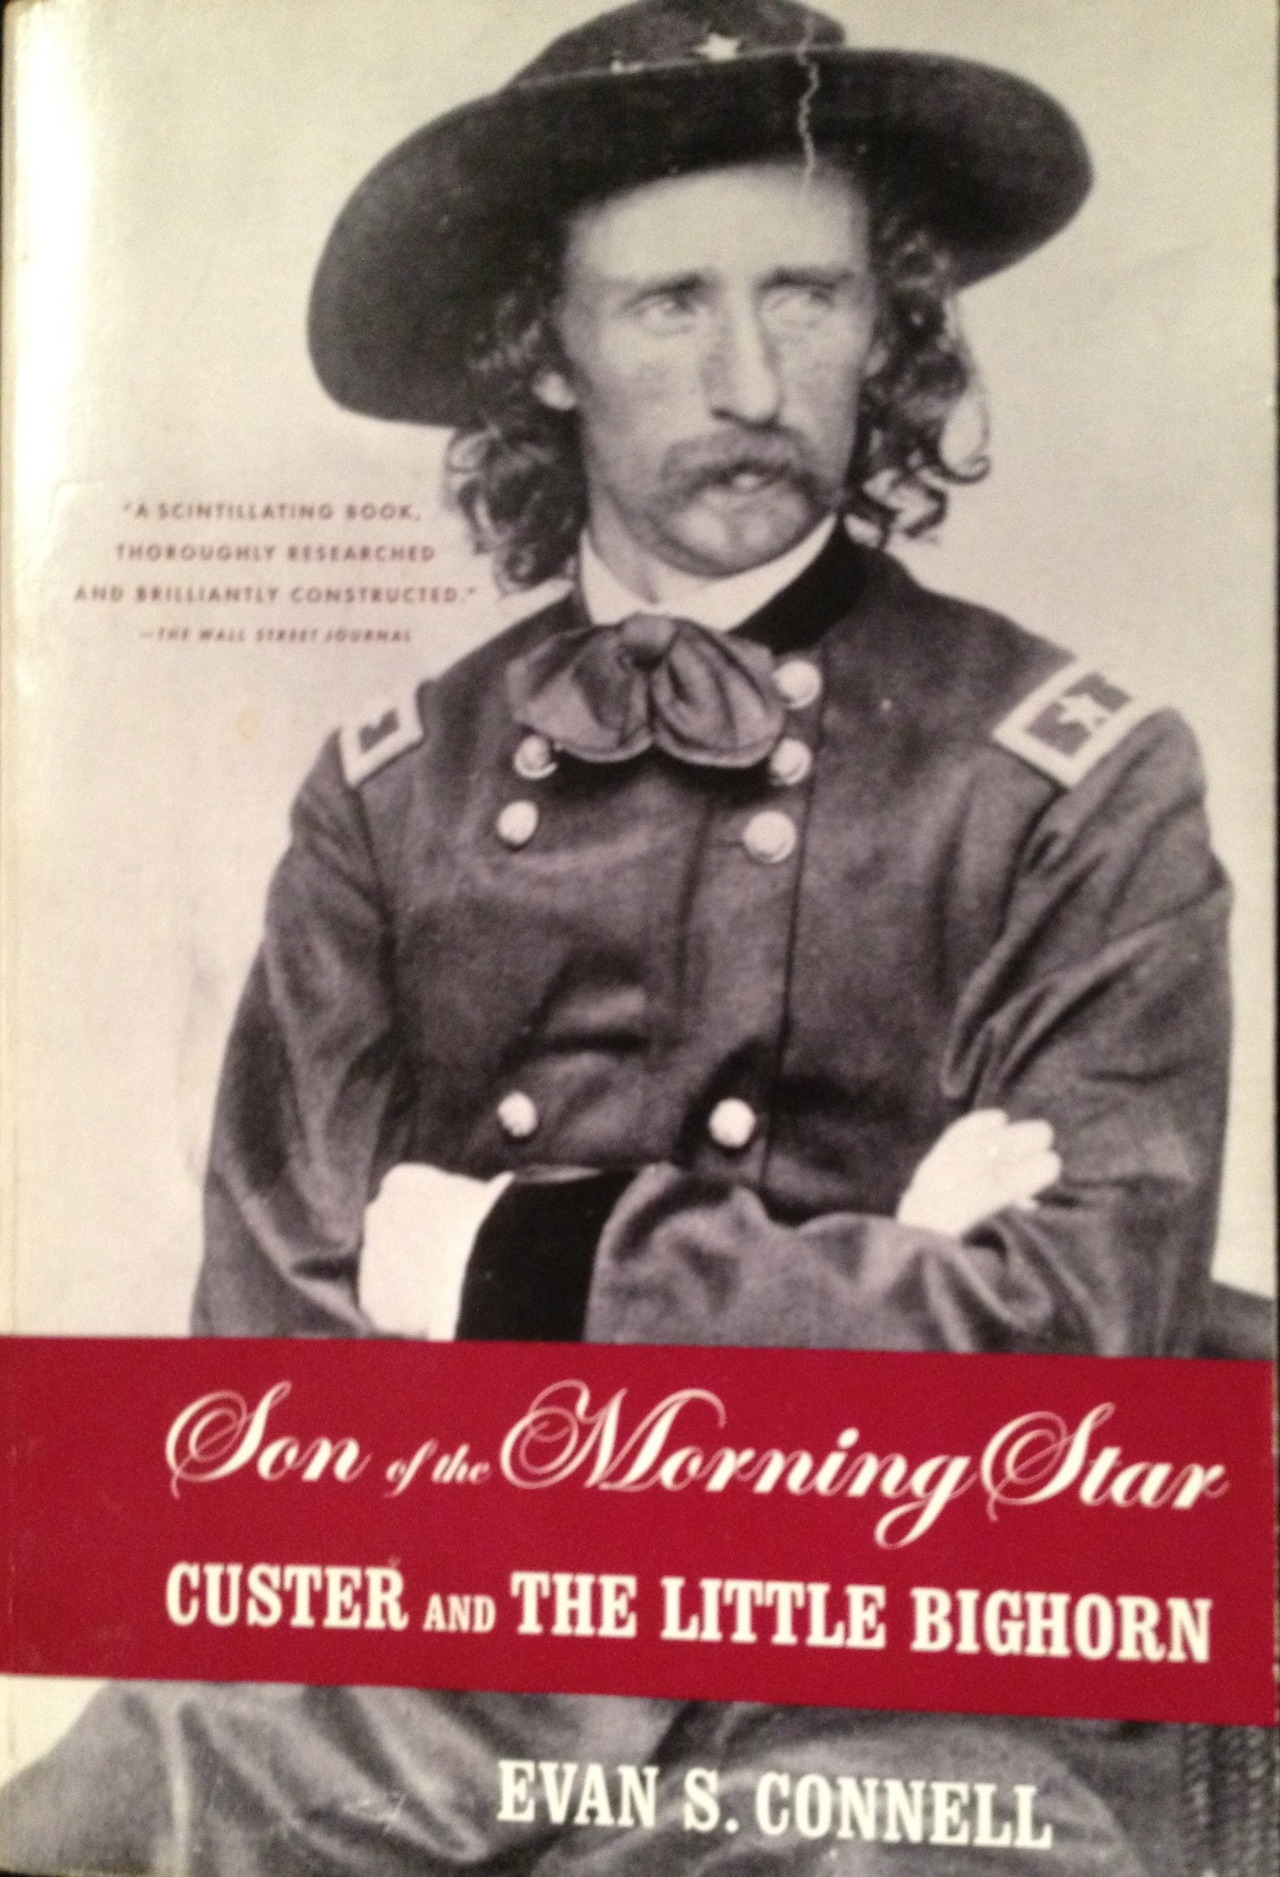 This exquisitely researched book by the novelist Evan S. Connell punctures many enduring myths about General Custer, the Little Bighorn, Crazy Horse and the other Indians who fought there. Buried in its pages are bits of Western lore and historical detail. It is an amazing piece of reportage.  Indians knew it as the valley of greasy grass. Greasy Grass is the usual translation, although there has been some quarreling about whether it ought not to be Rich Grass or perhaps Lodge Grass, these two expressions being very similar in the Crow language. However the name should be translated, Indians liked this valley and often camped there. Cottonwood trees beside the river provided not only firewood but a sort of ice cream —a frothy gelatin which accumulated when the bark was stripped off and the exposed trunk scraped.